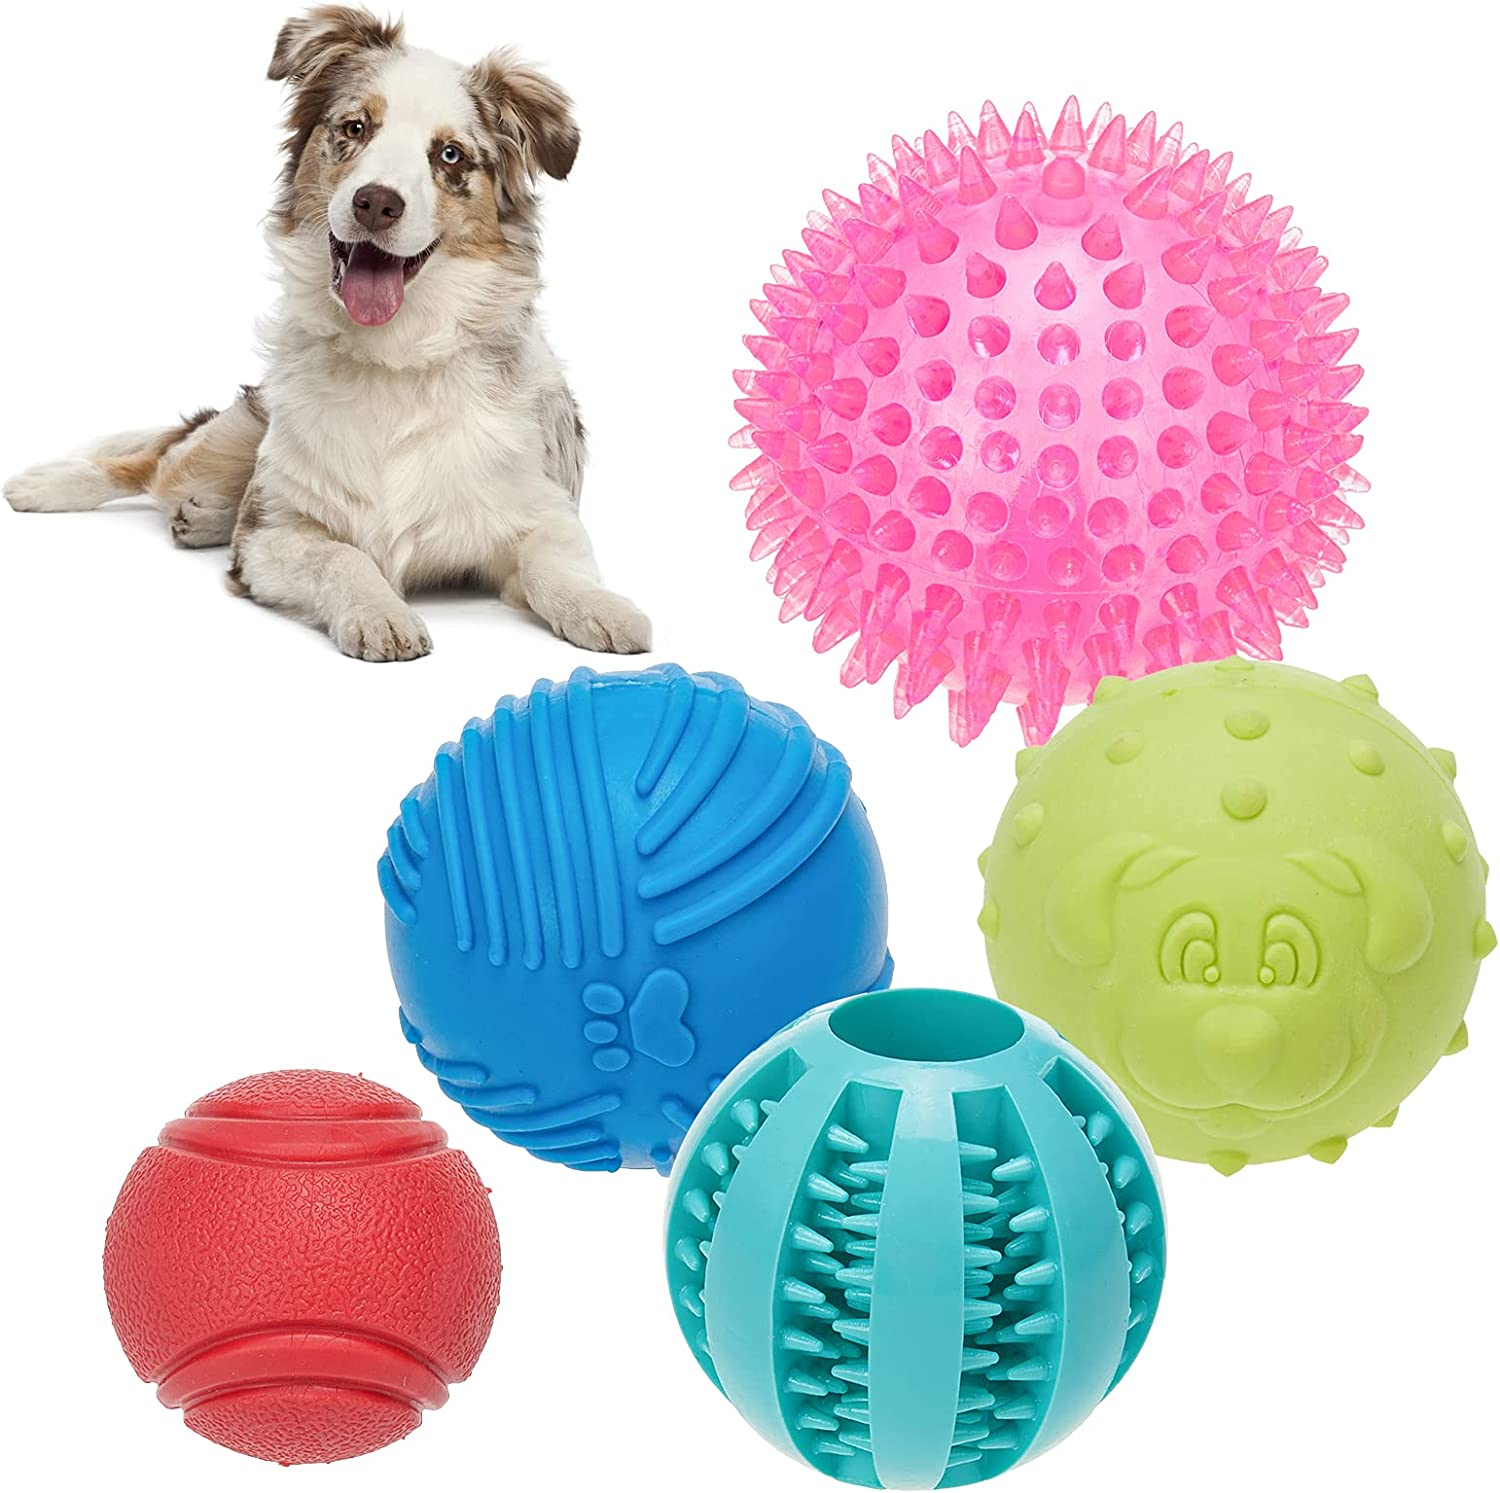 BINGPET Interactive Dog Ball Toys 5 Packs in 1 Set, Functional Pet Rubber Balls, Squeaky Spike Ball, Dog Treat Balls Food Dispensing Toy, Solid Rubber Chew Ball, Fit for Small Medium Large Dogs